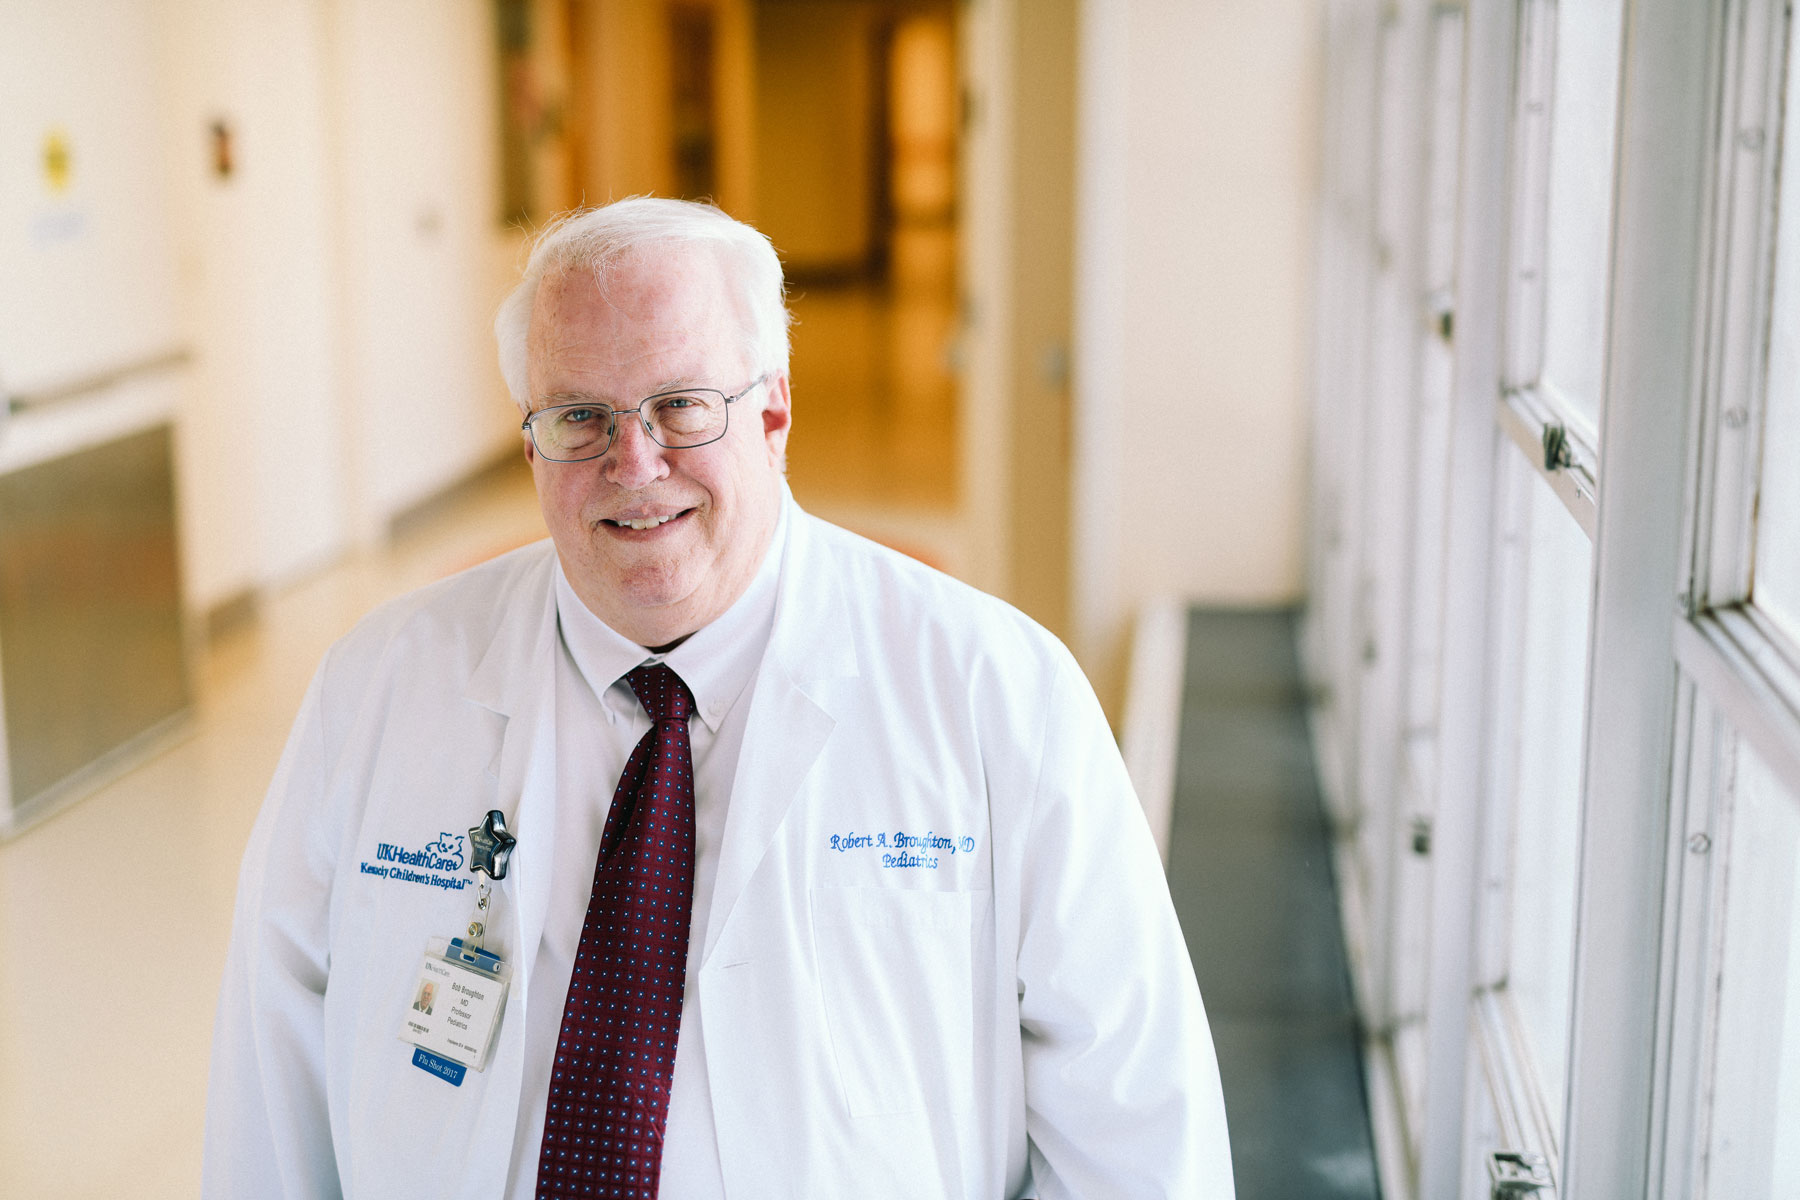 Dr. Broughton wears his white doctor's coat and smiles for a photo in a hallway at UK HealthCare.